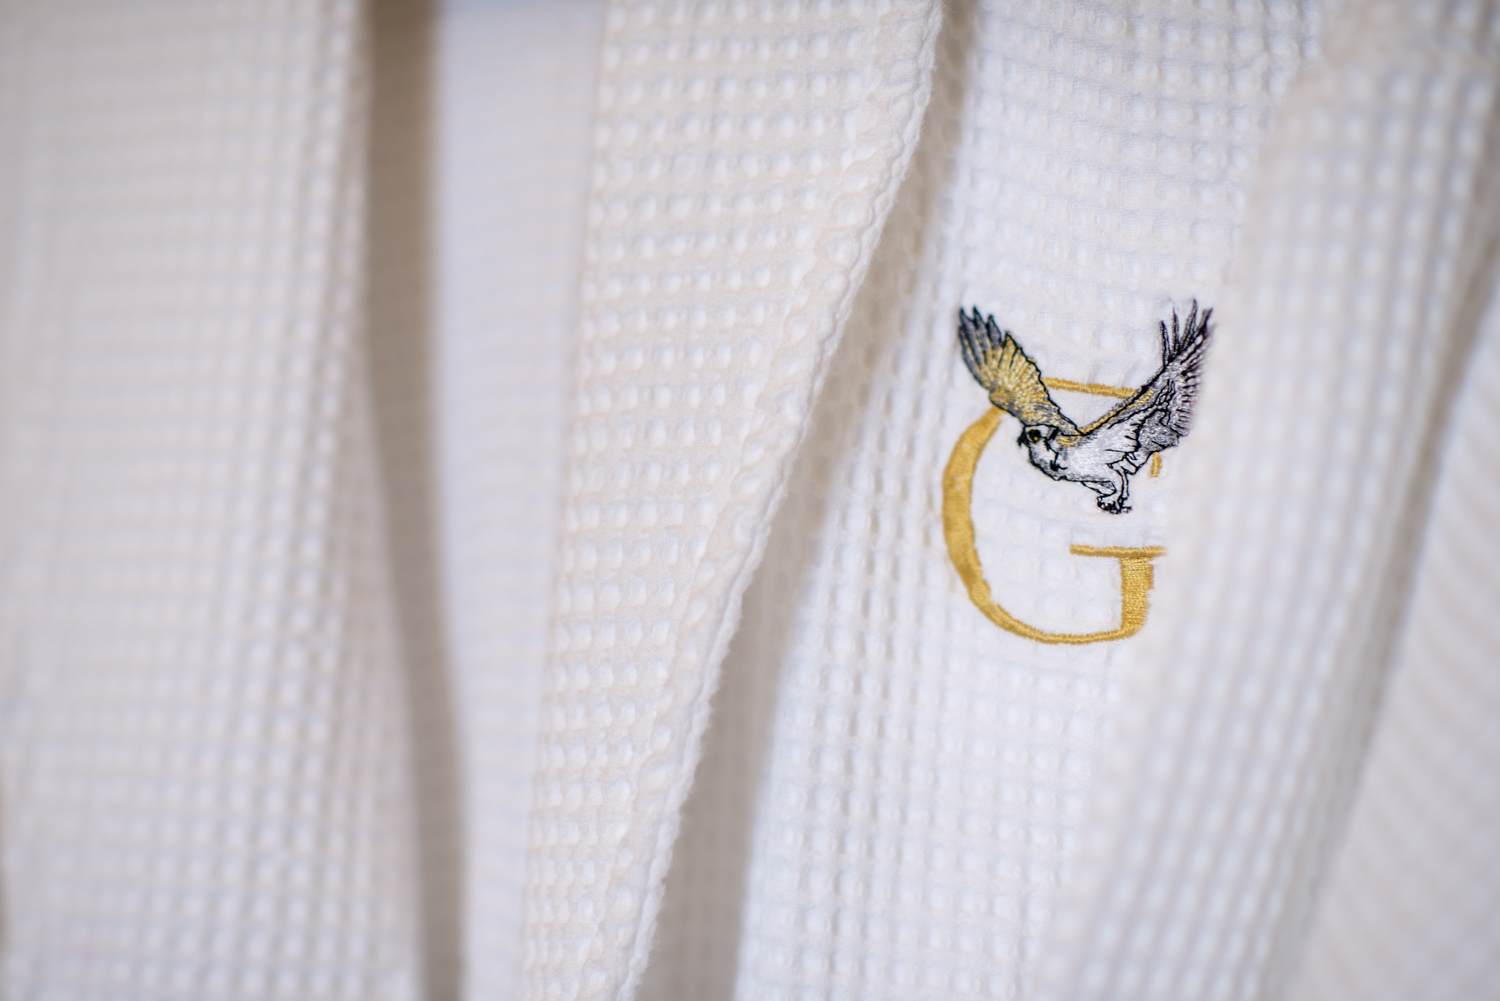 Logo on the gowns